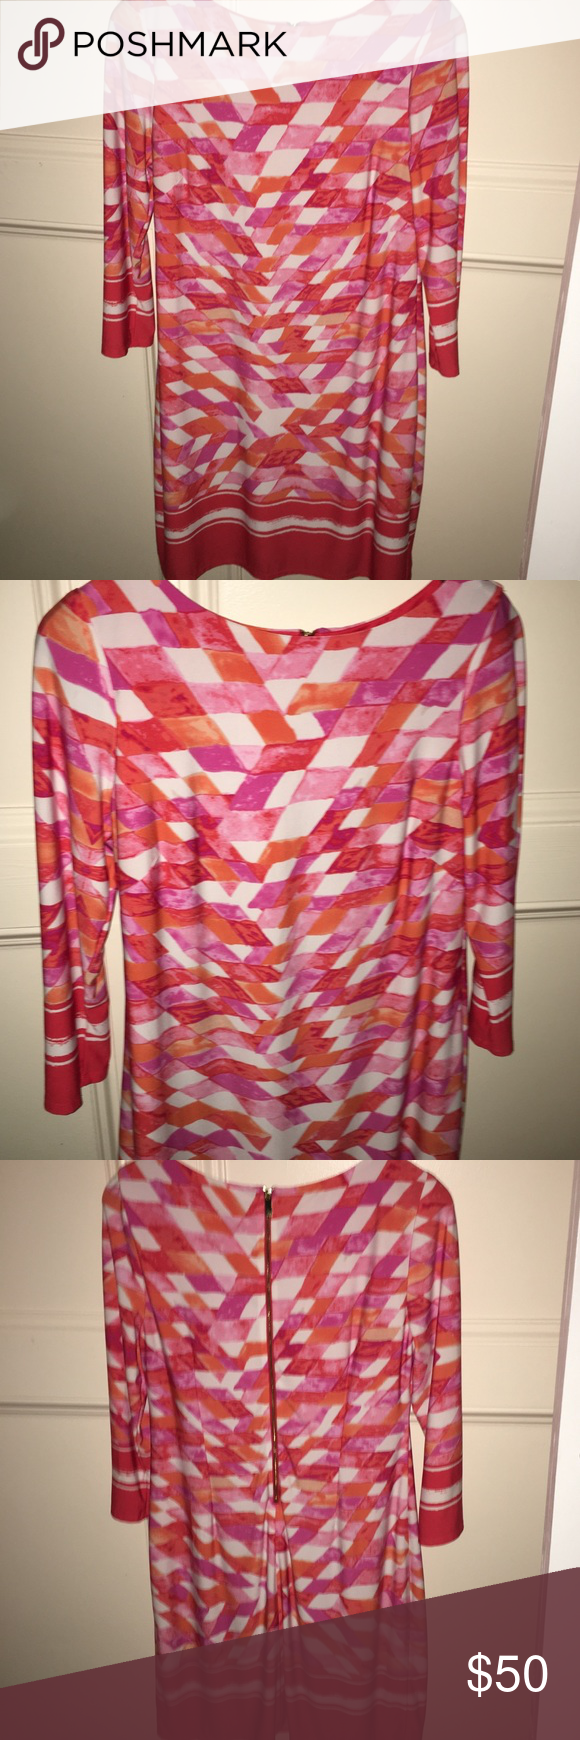 Euc Vince Camuto Vibrant Colors Shift Dress Shift Dress Colorful Dresses Dresses